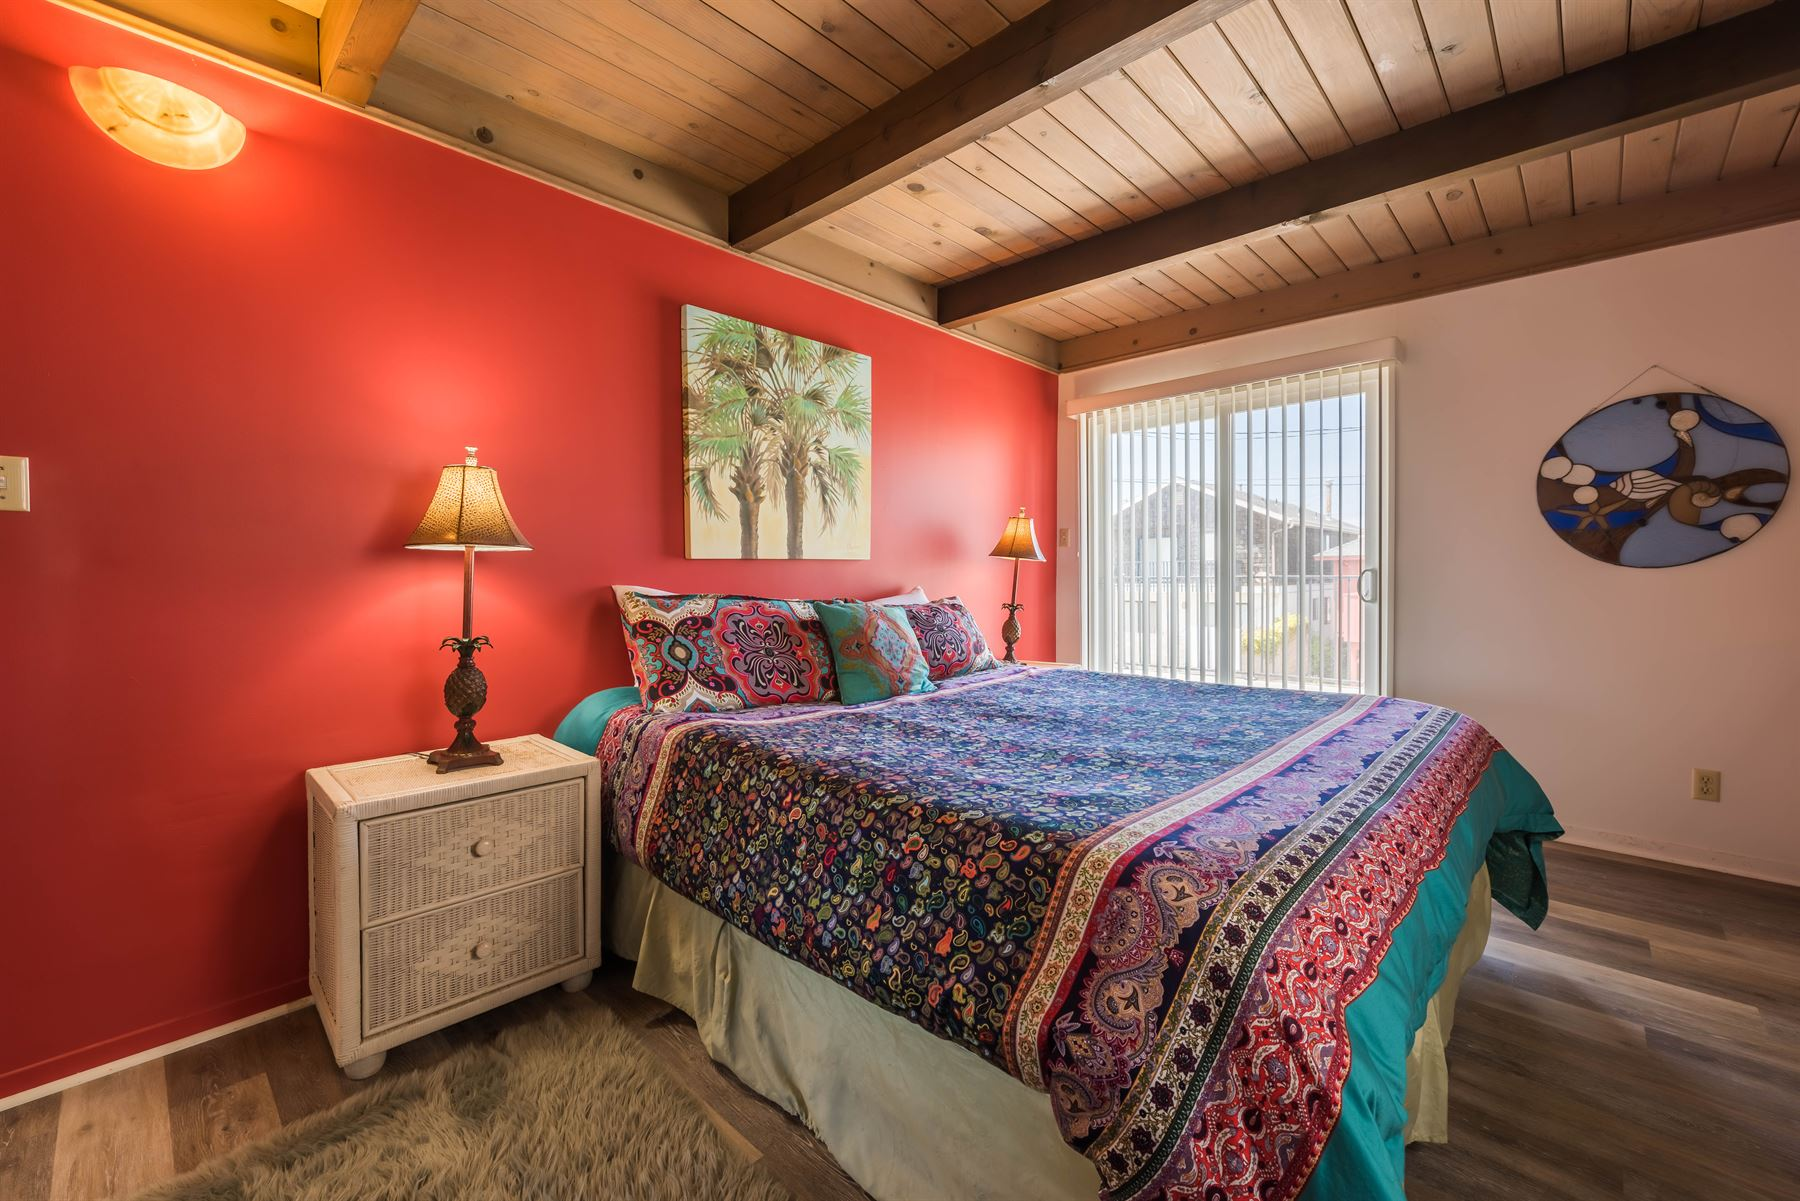 Oceanview Hideaway - Interior - Bedroom with red accent wall and wicker endtables beside a queen bed